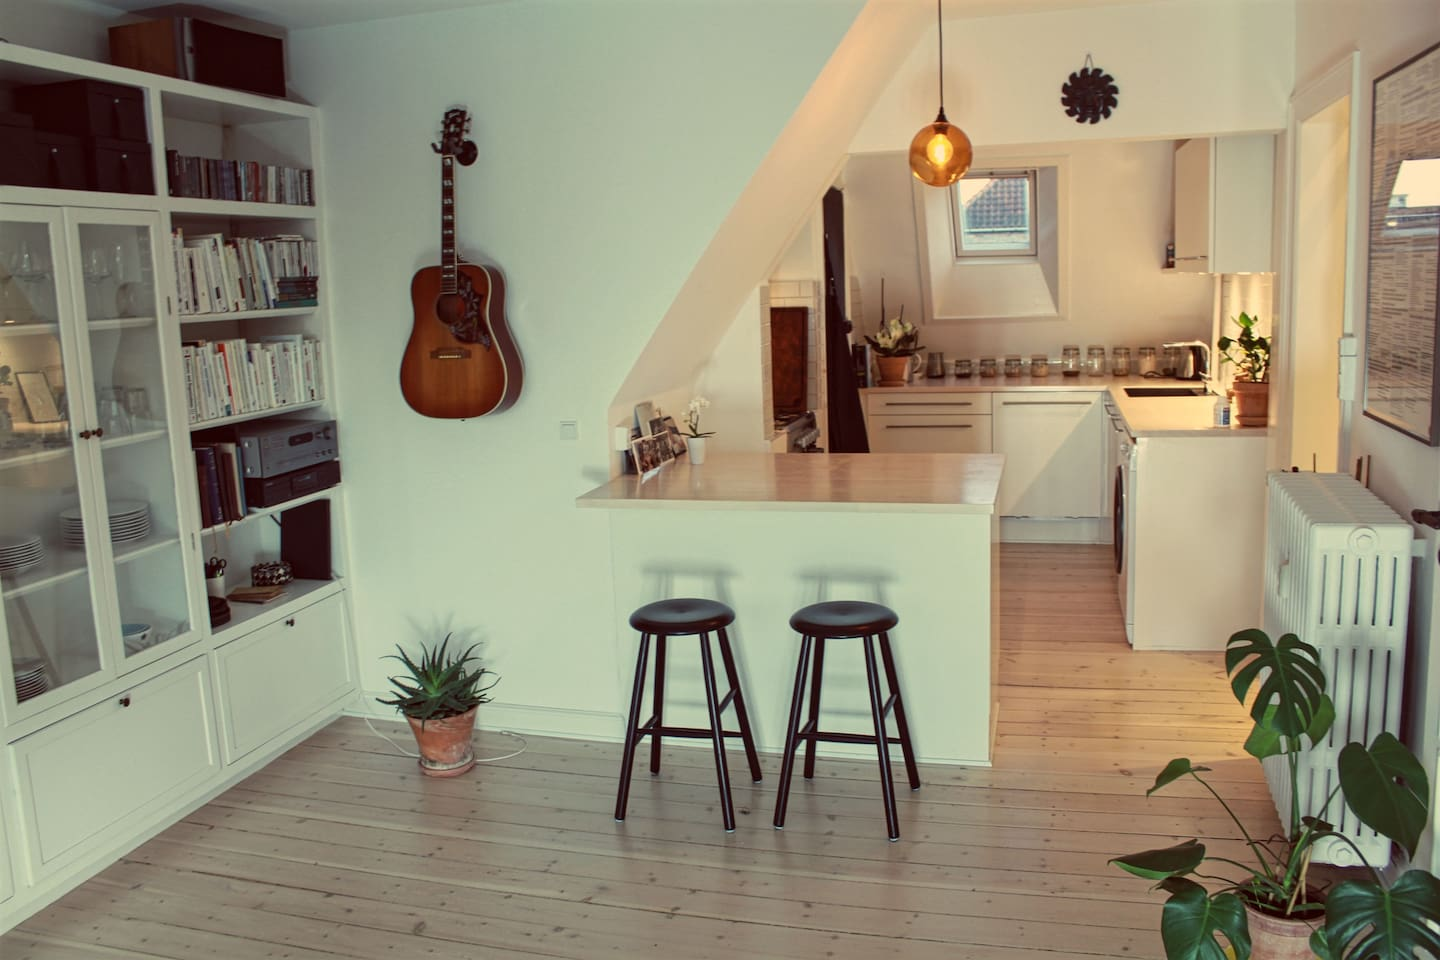 Open kitchen - allowing you to make food and hang out at the same time